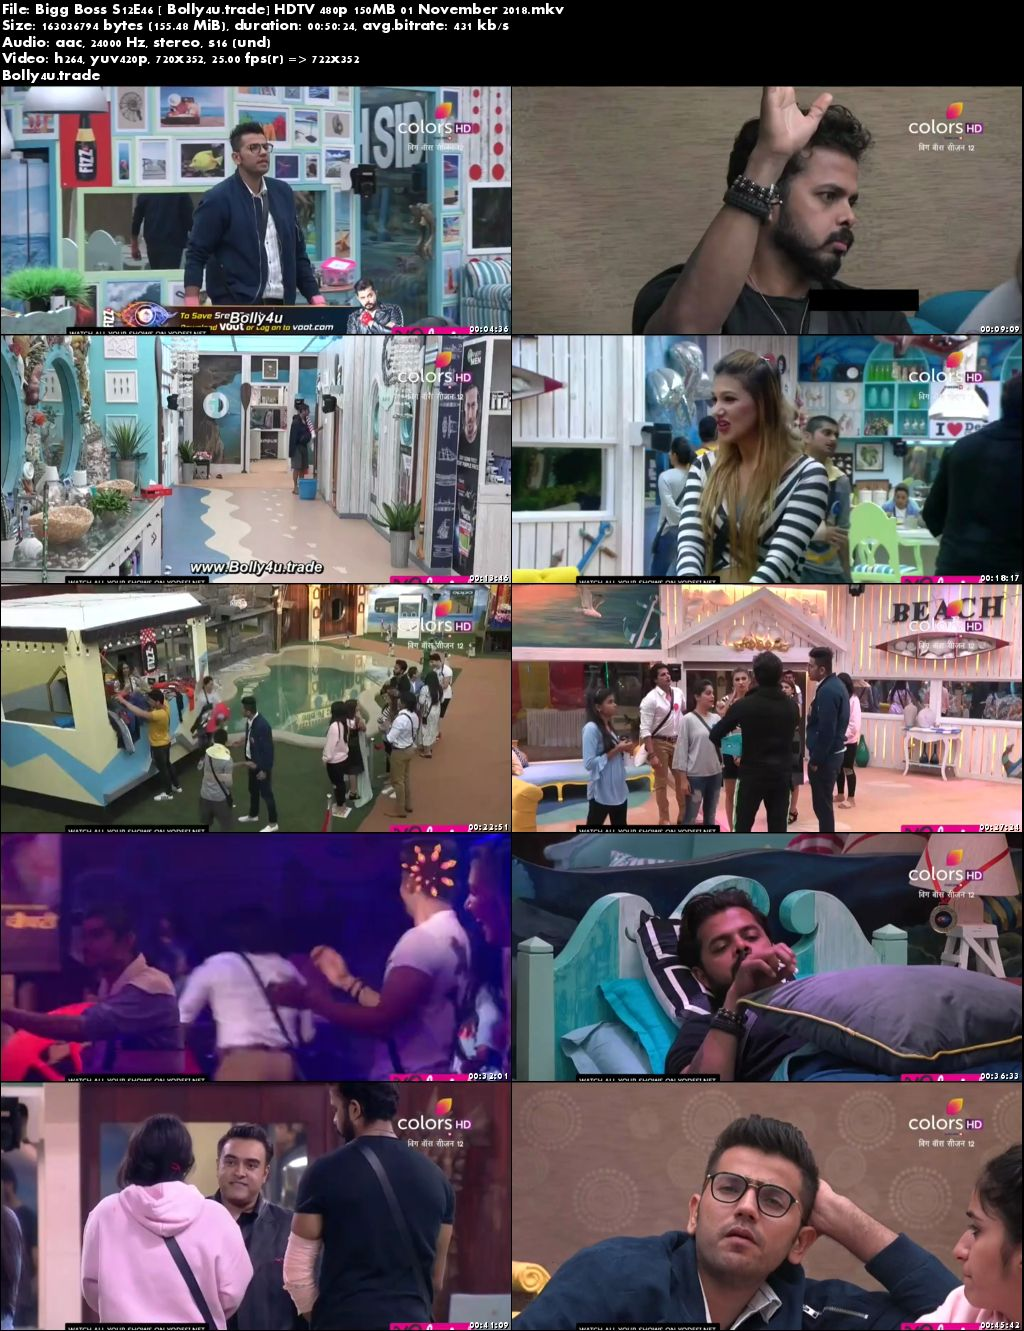 Bigg Boss S12E46 HDTV 480p 150MB 01 November 2018 Download